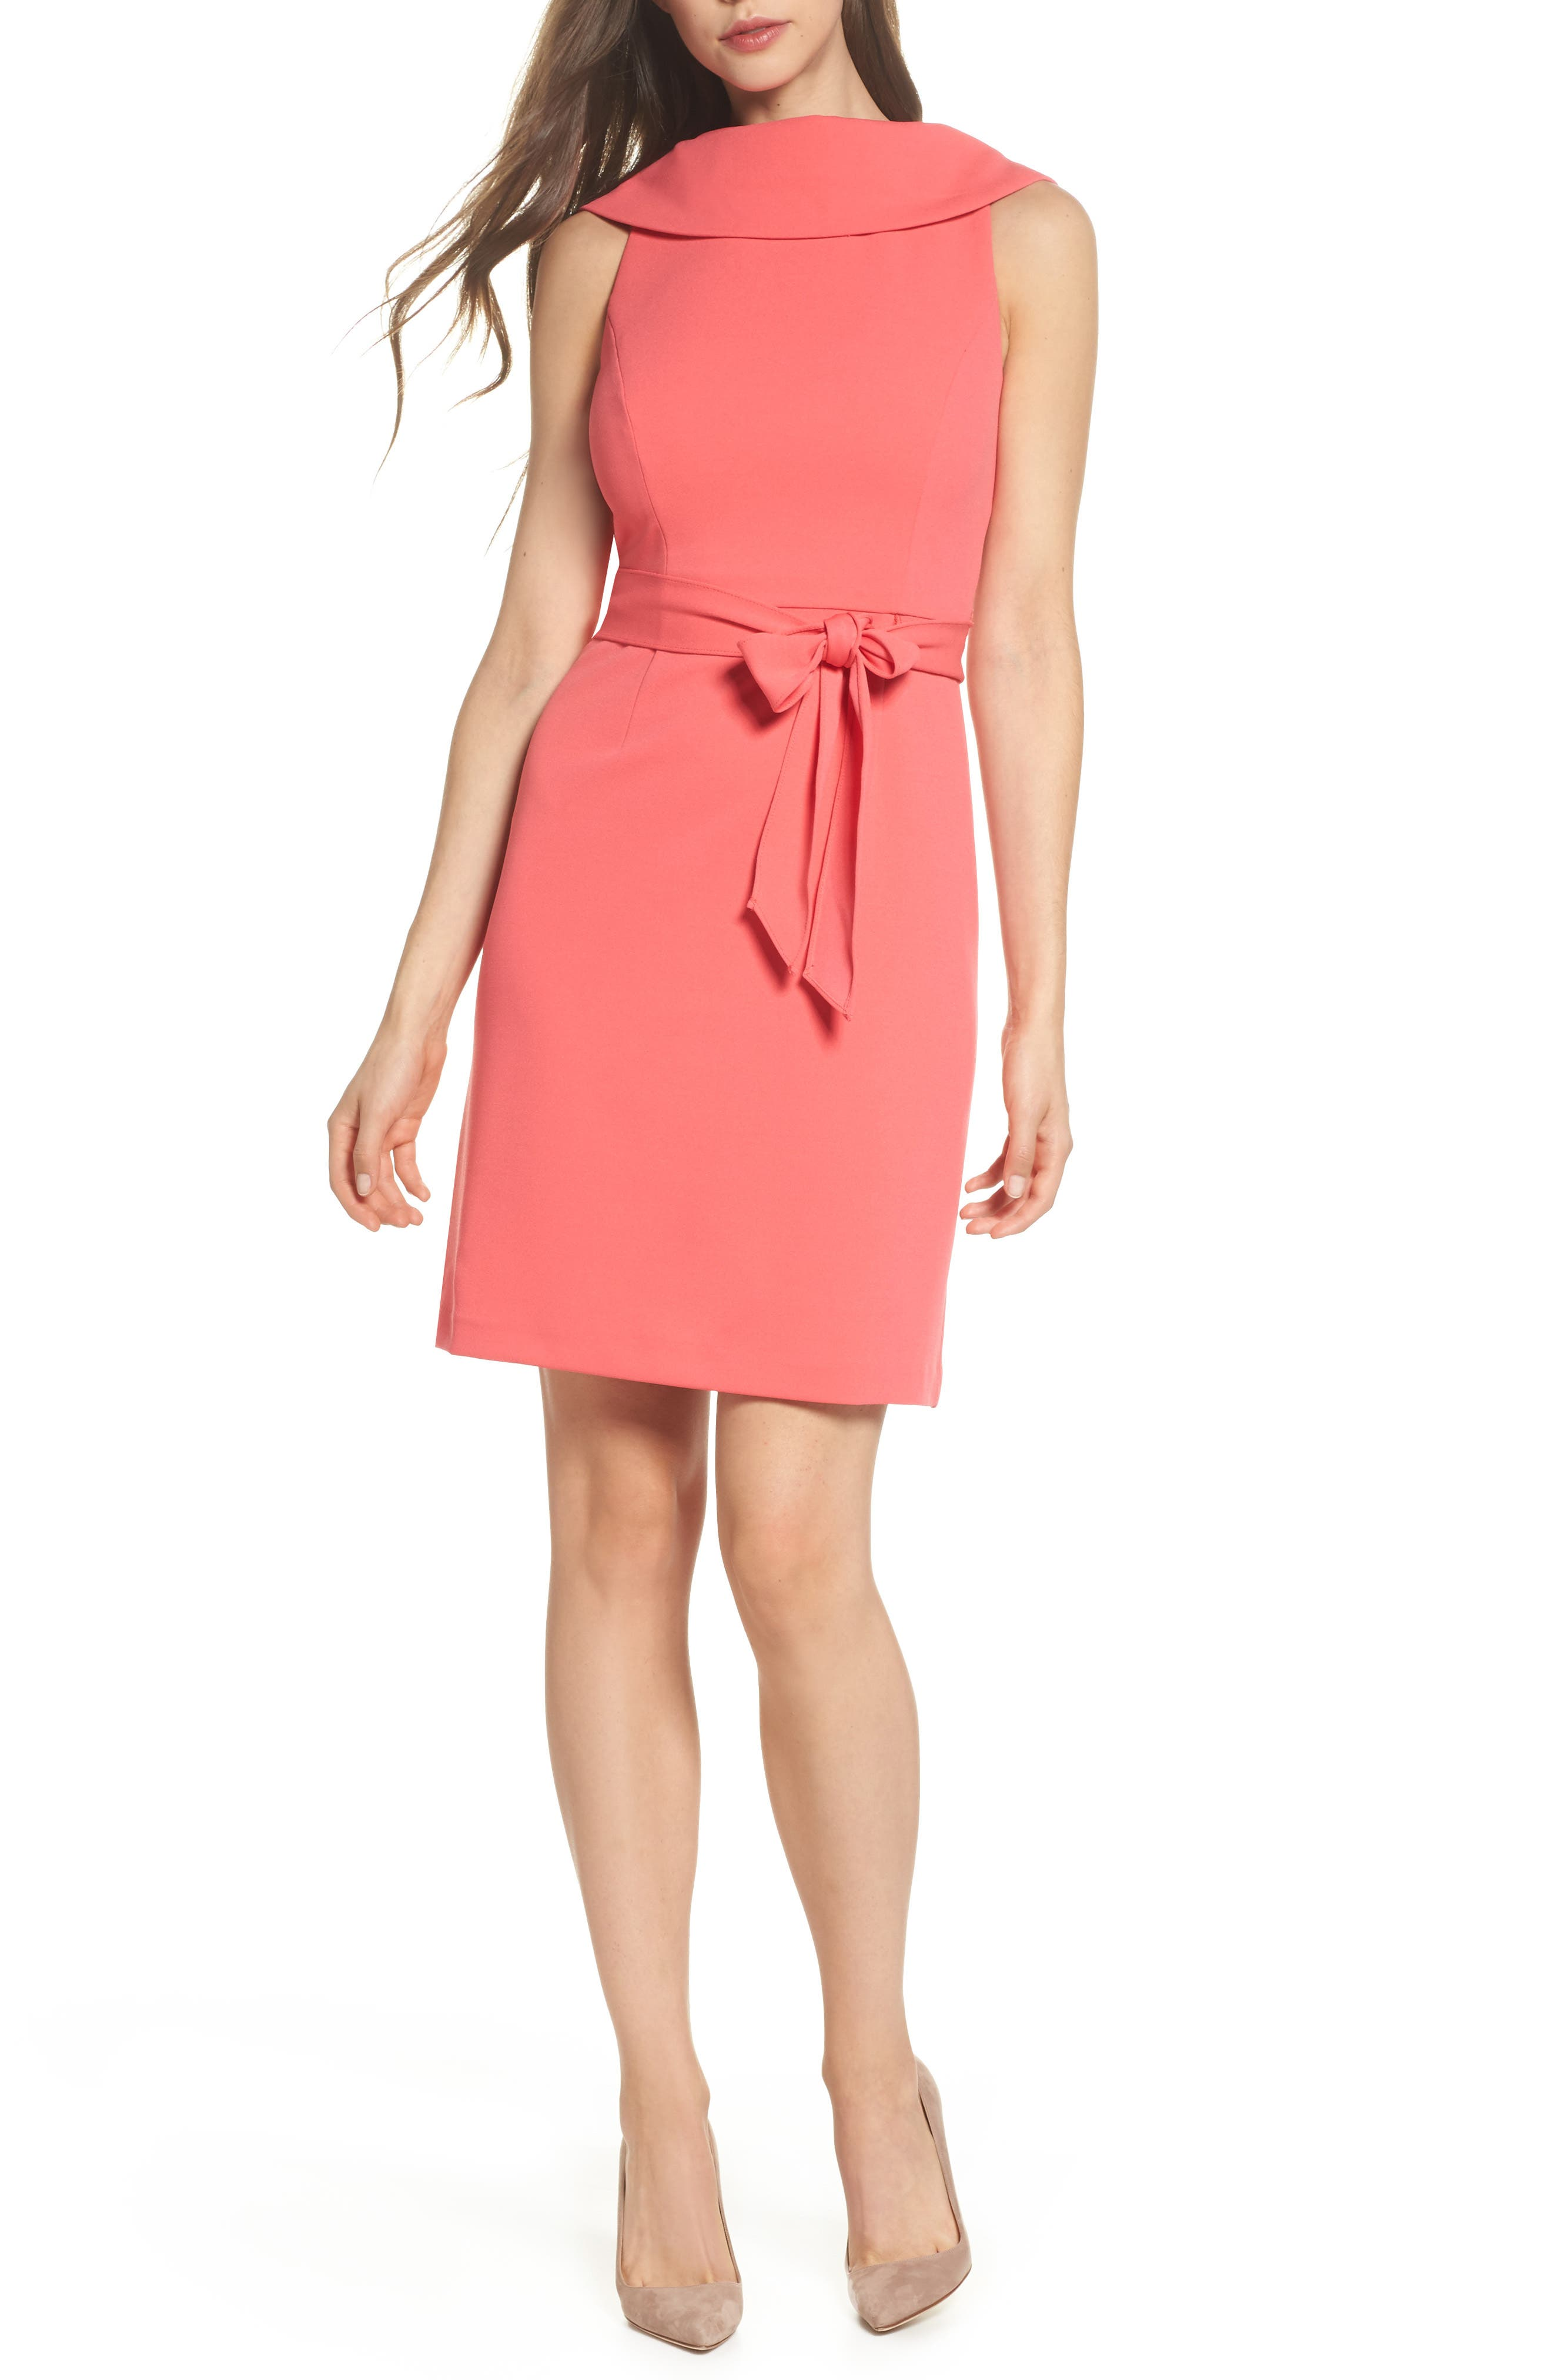 ADRIANNA PAPELL,                             Roll Neck Crepe Dress,                             Main thumbnail 1, color,                             650